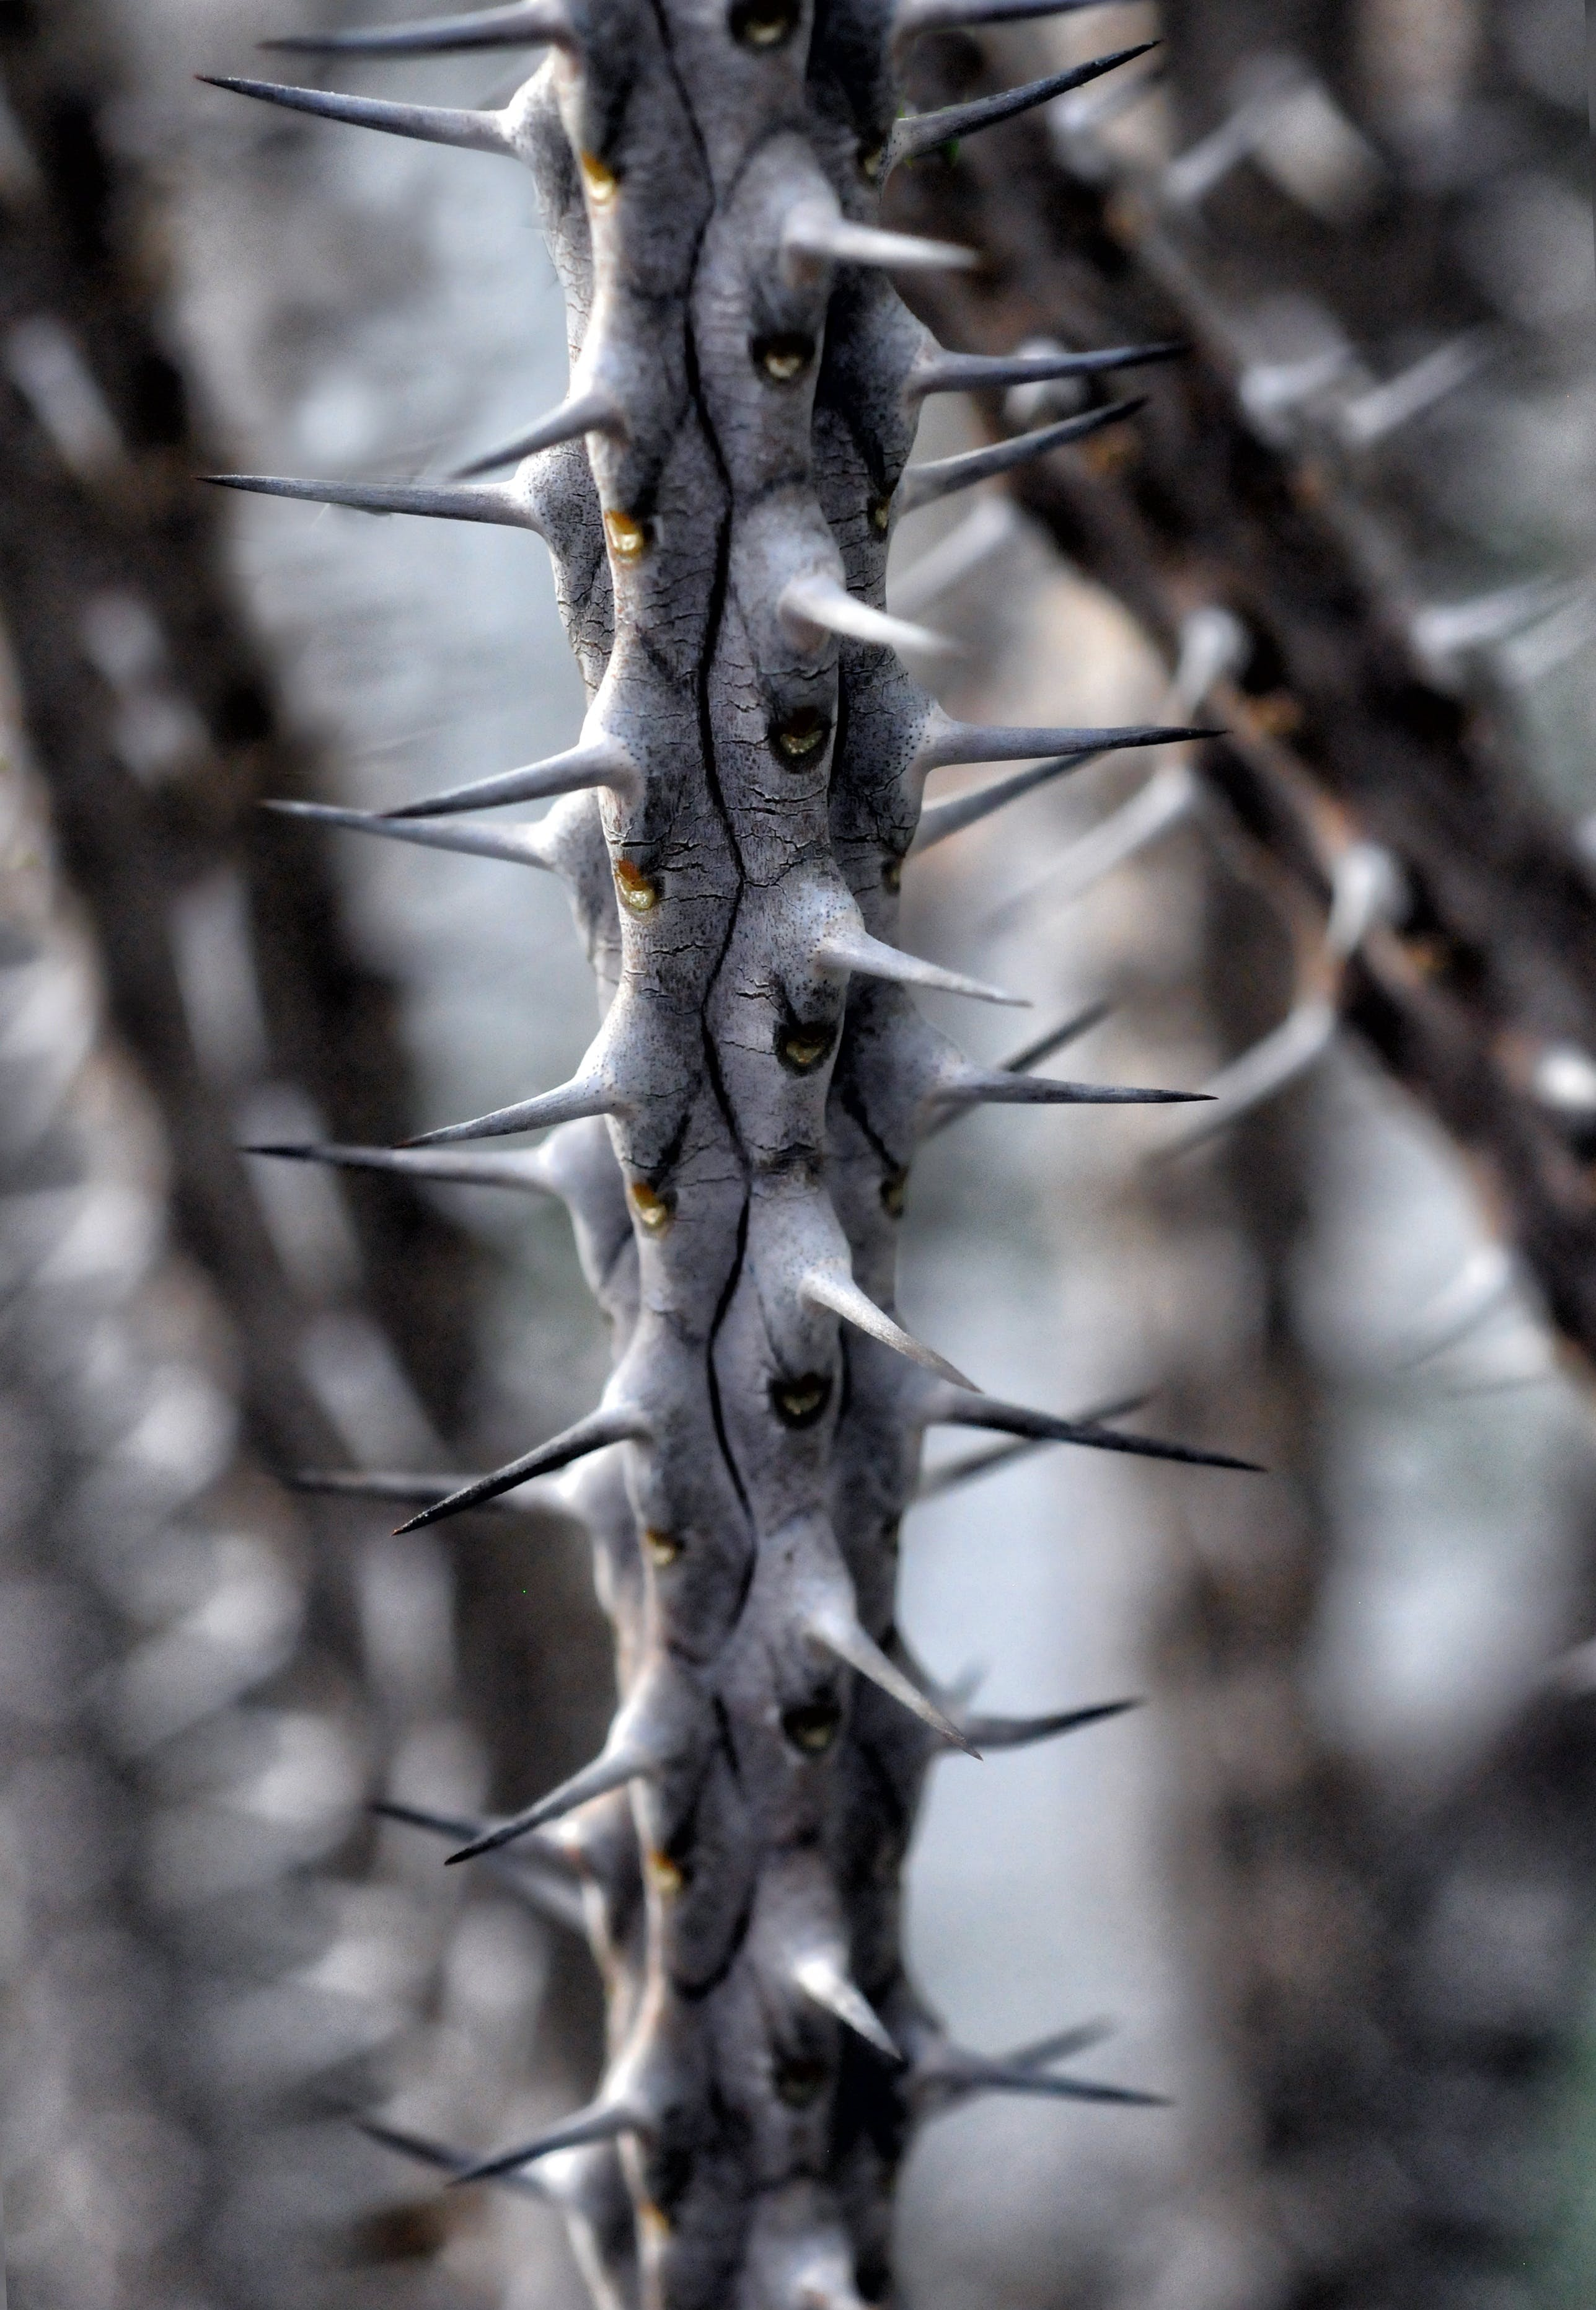 Selective Focus Photo of Gray Stem With Thorns